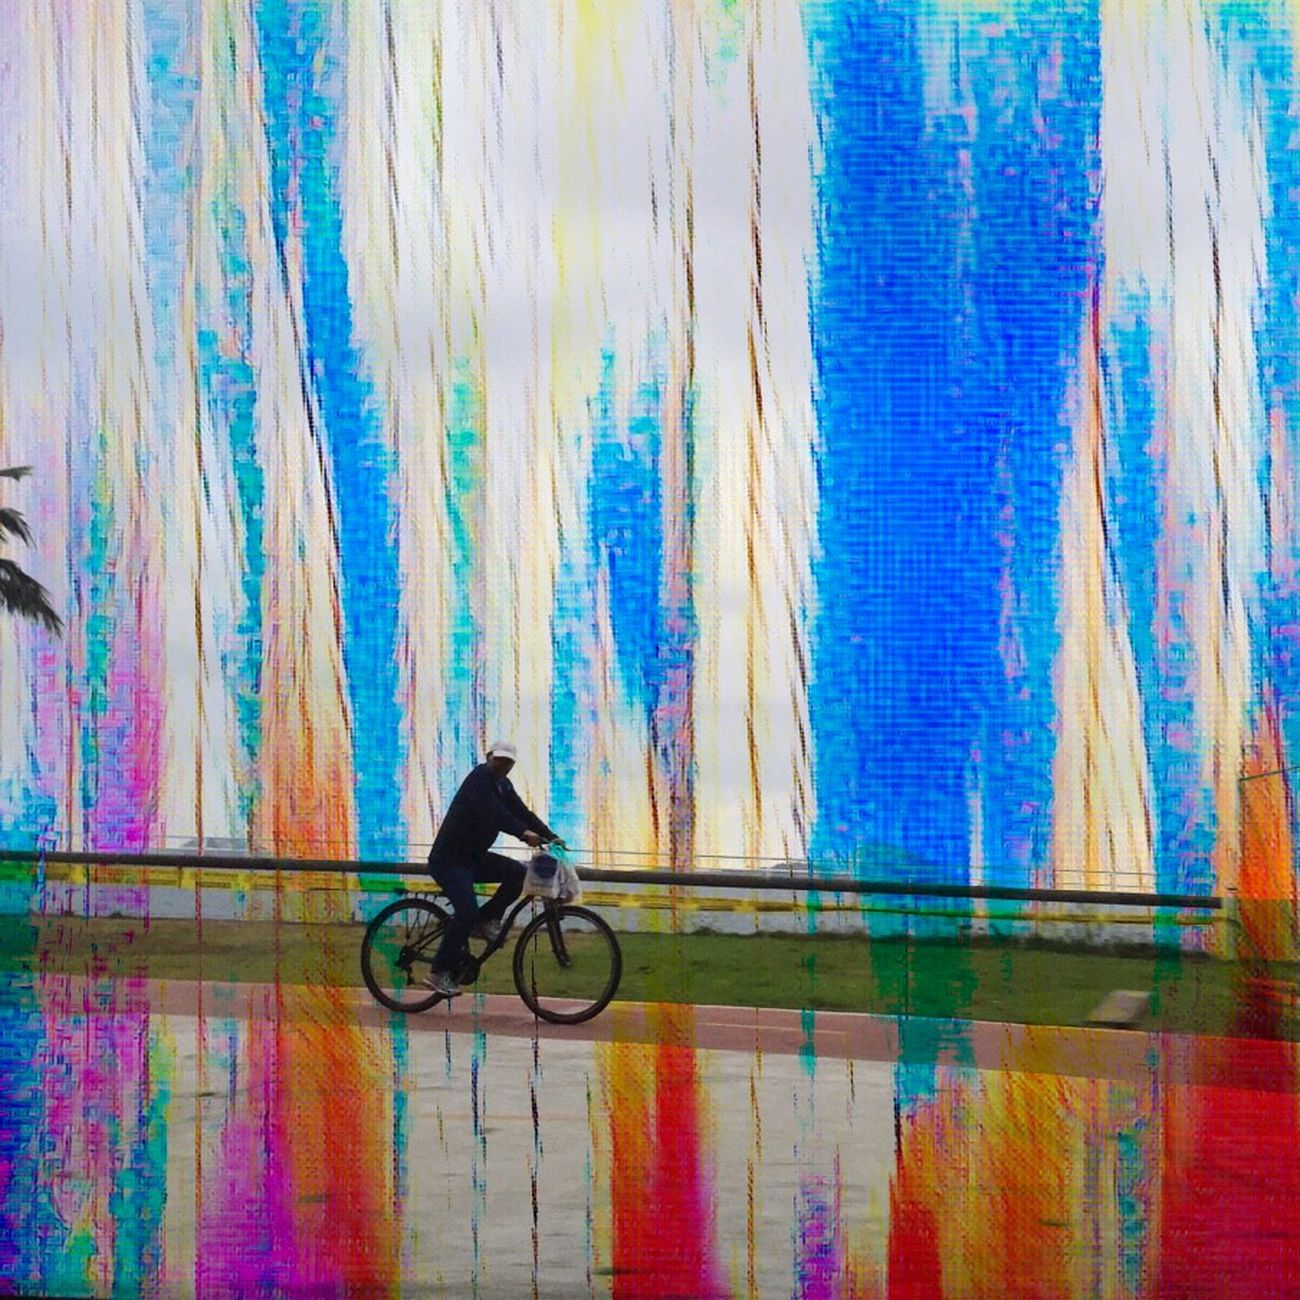 The City Light Repost Or Not? Pardon My Bad Memory! Bicycle Full Length Outdoors Abstractions In Colors IPhoneArtism For My Friends That Connect My City Is Beautiful Beauty In Nature Sunlight This Could Be An Album Cover Leisure Activity